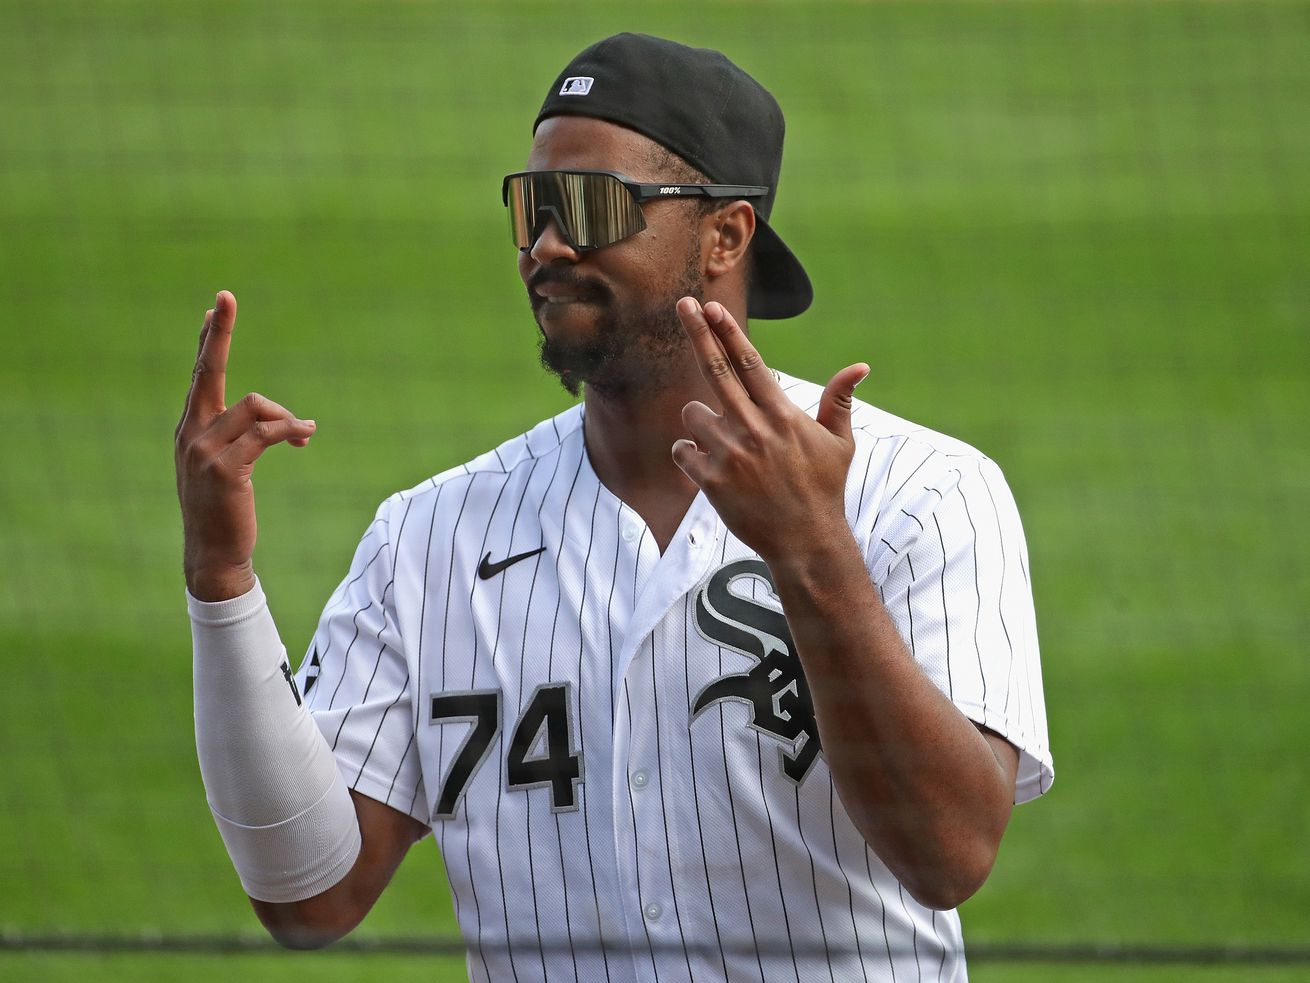 Thanks for lifting our spirits, Sox and Cubs, and for playing with class in strange times